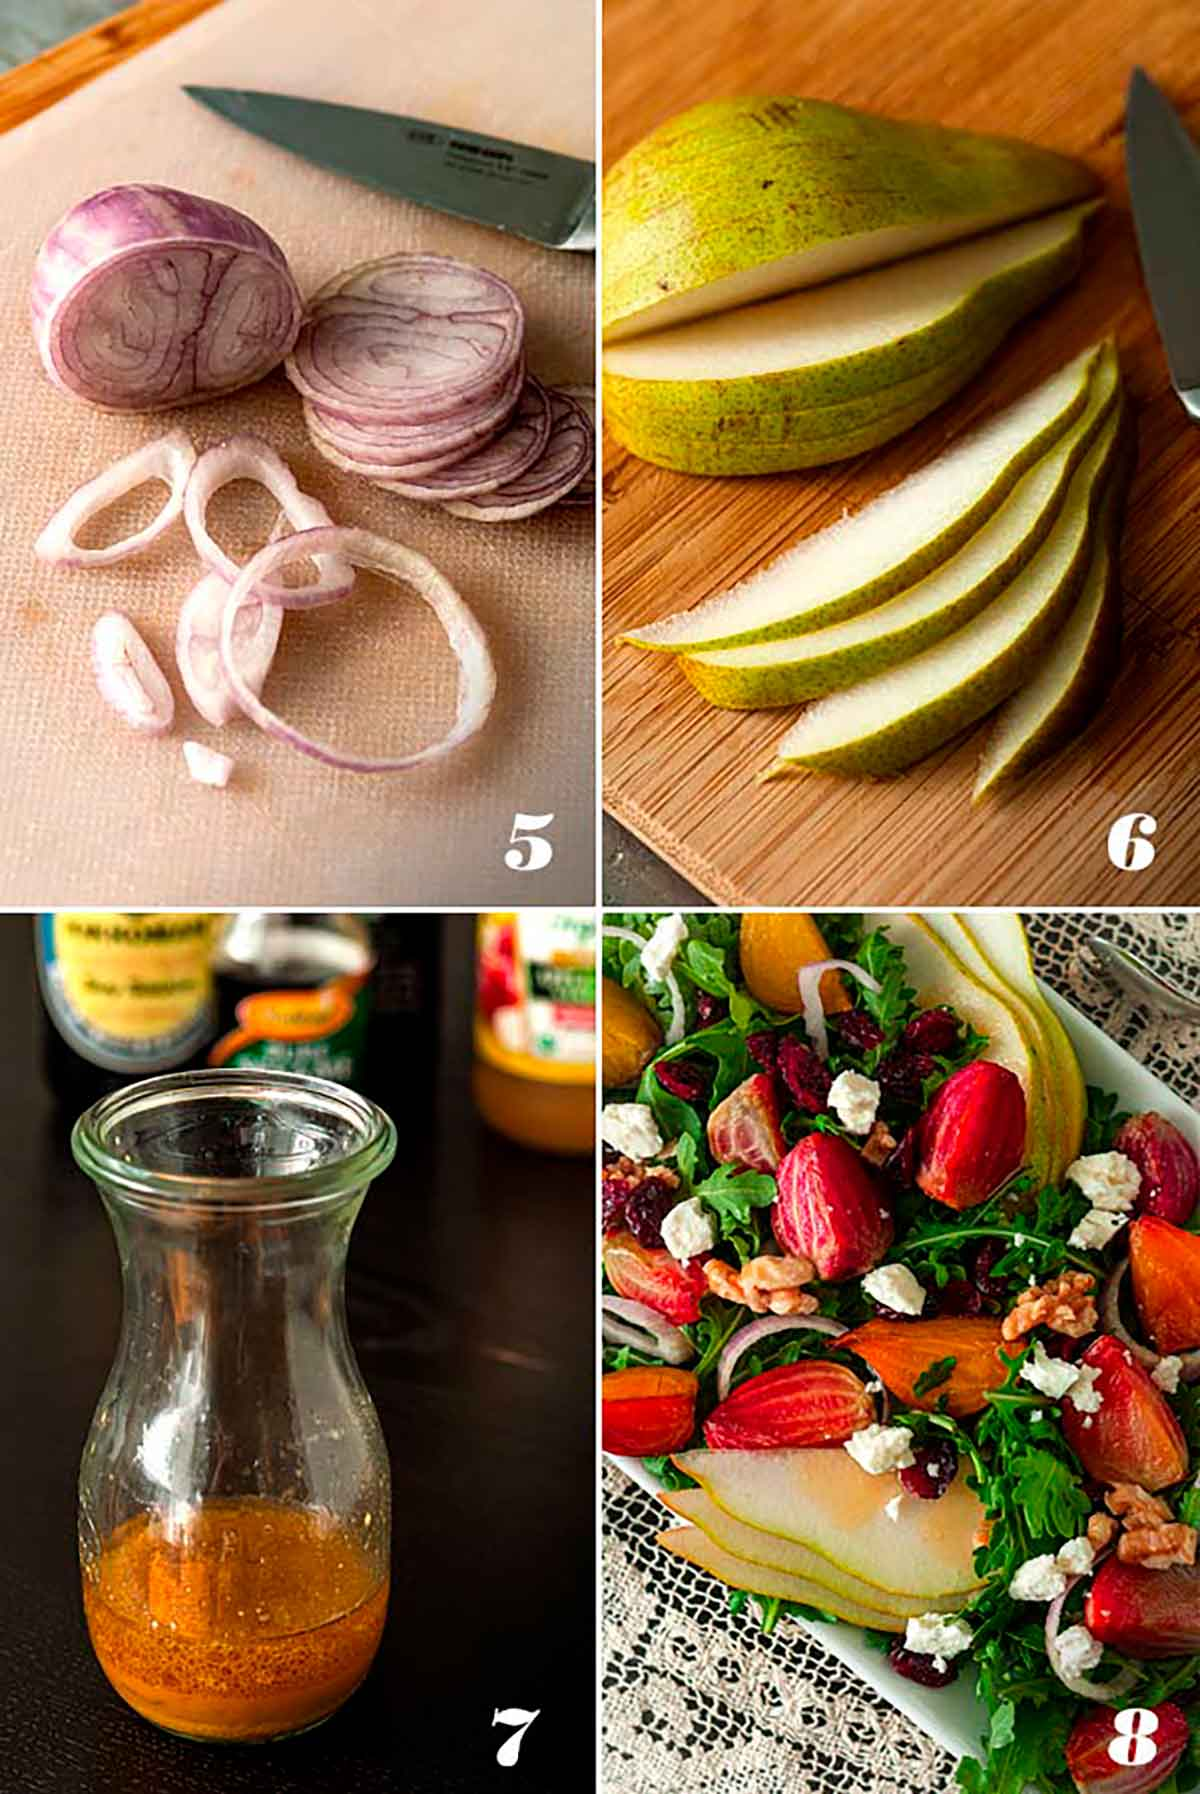 A collage of 4 numbered images showing how to slice vegetables, make vinaigrette and assemble salad.